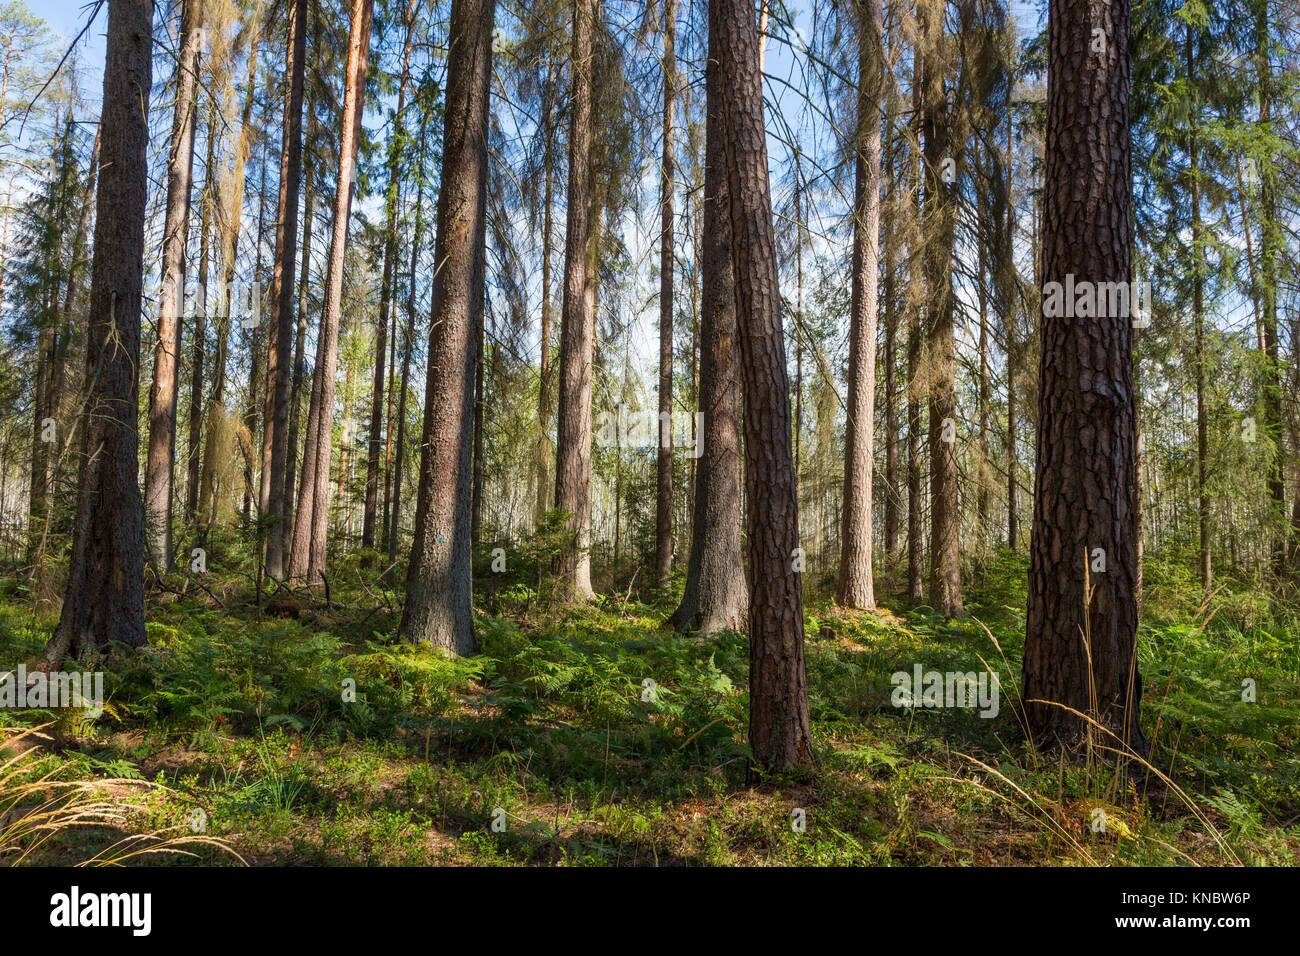 Early autumn morning in the forest with mist and dead spruces still standing, Bialowieza forest, Poland, Europe. - Stock Image